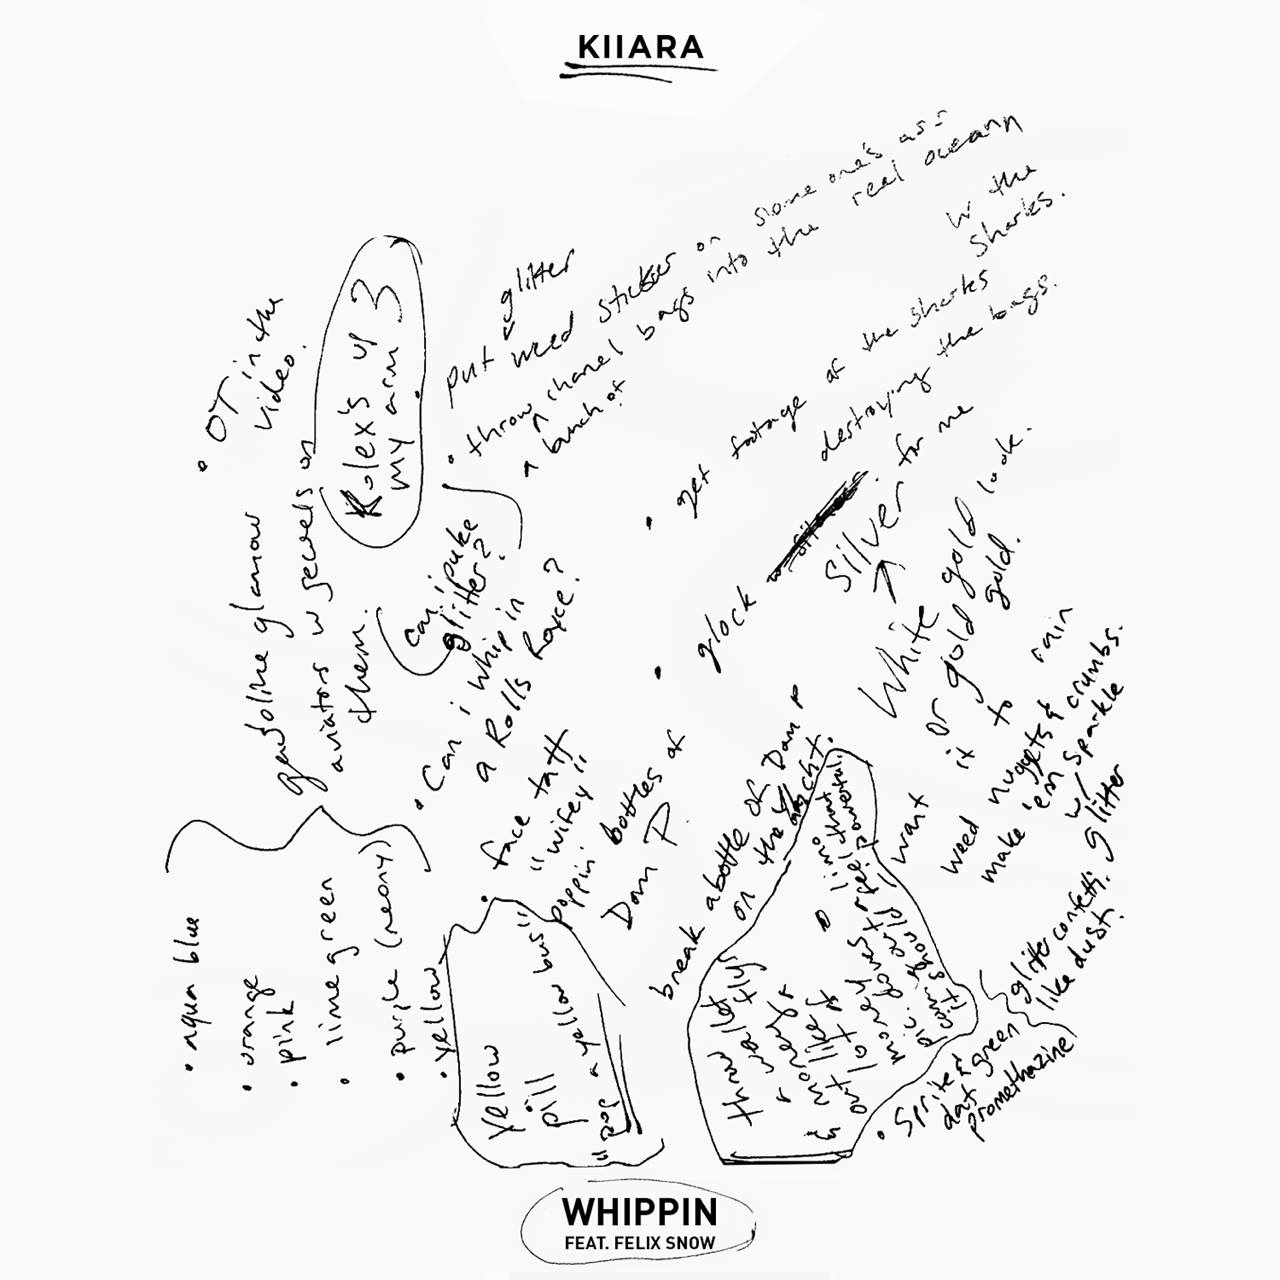 Track Review: Kiiara ft. Felix Snow, 'Whippin'